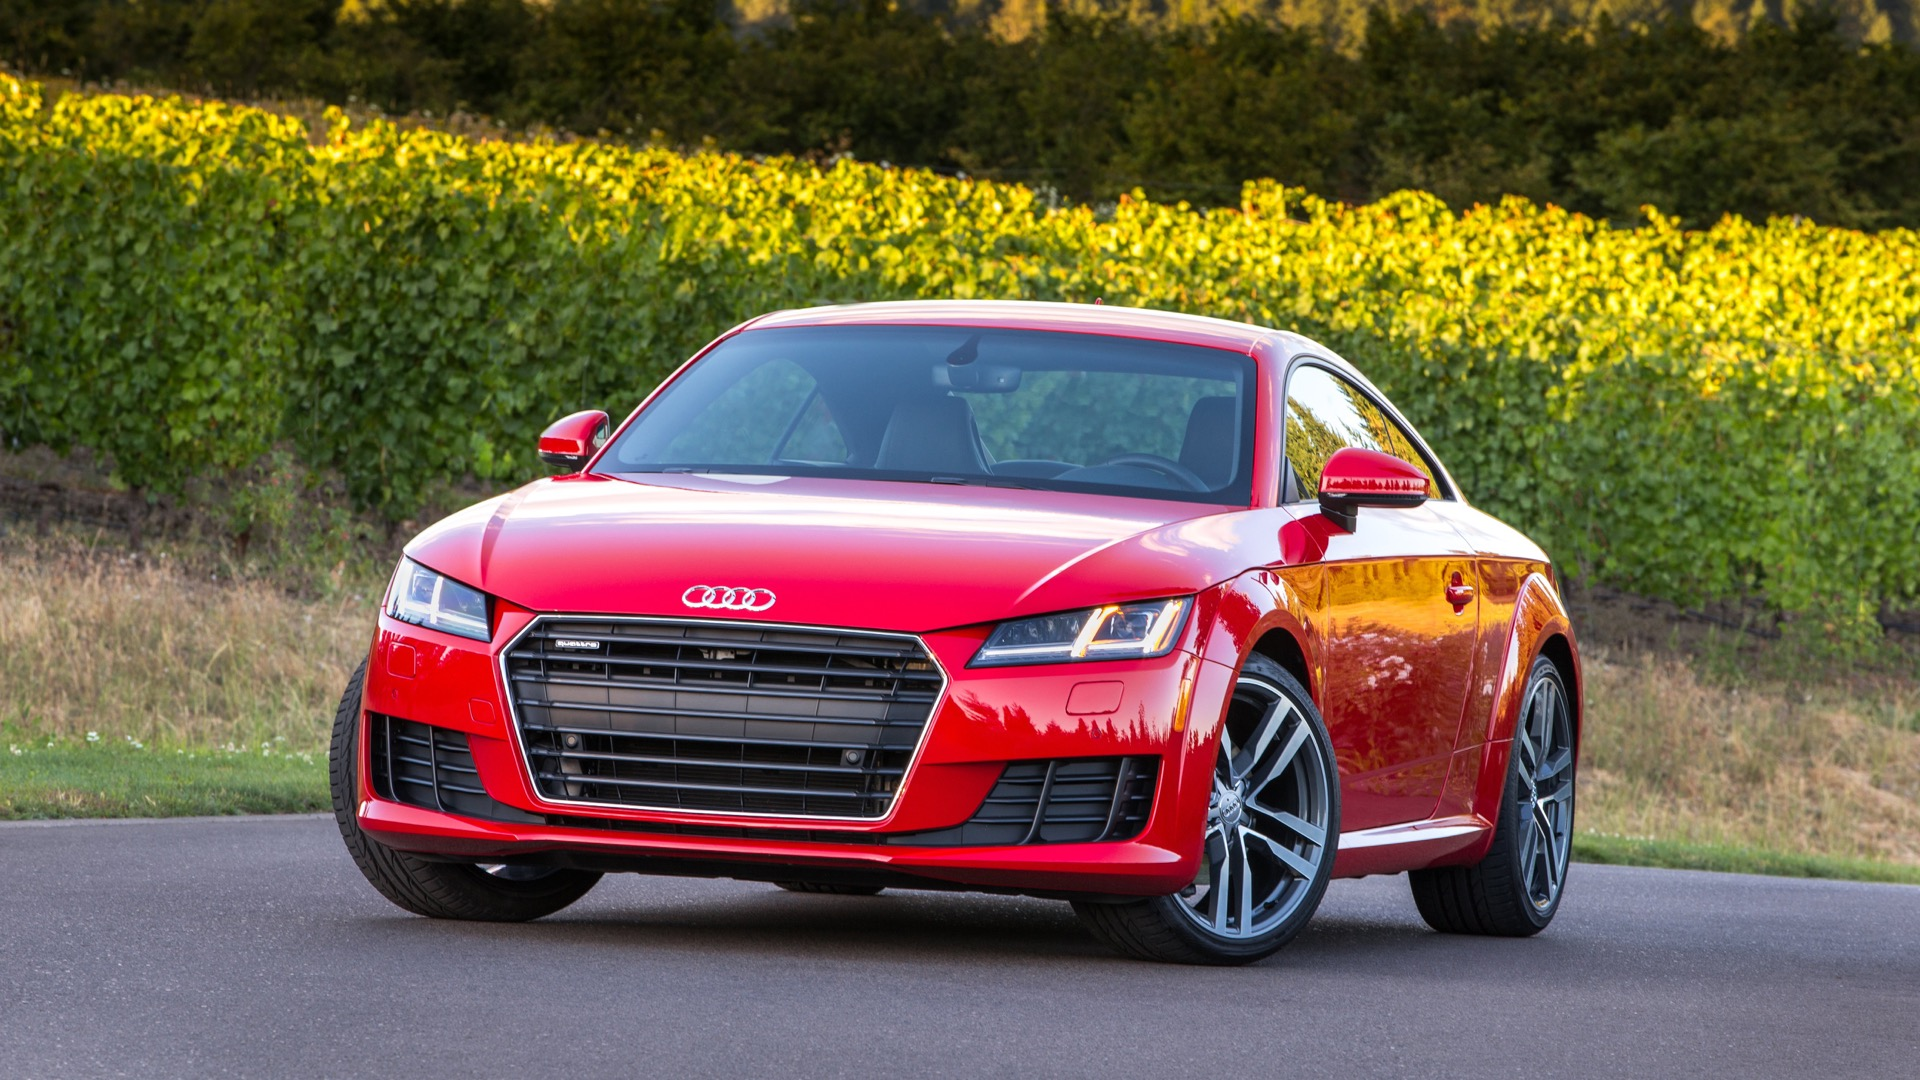 2017 Audi TT Safety Review and Crash Test Ratings - The ...